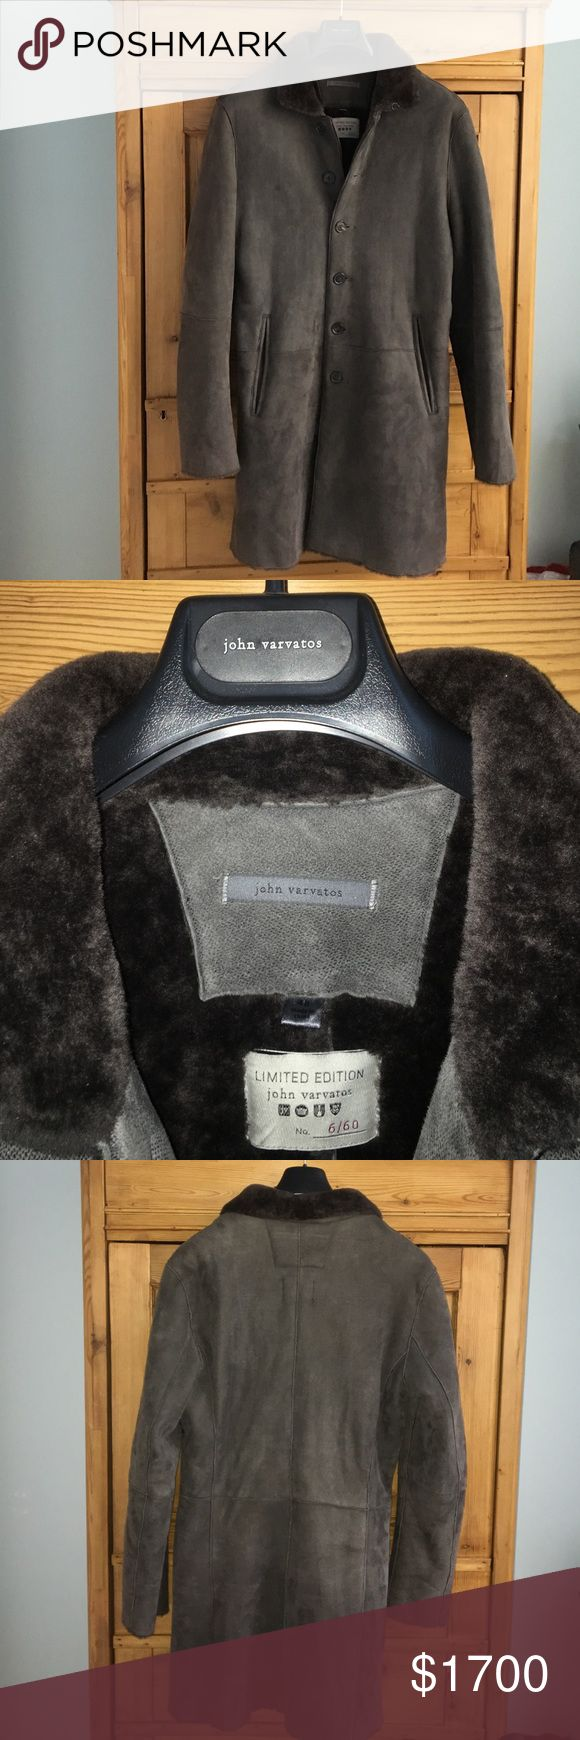 Men's gray 100% lamb shearling John Varvatos coat Men's gray 100% lamb shearling John Varvatos coat. NWOT. Limited-edition John Varvatos number 6/60 meaning only 60 were made. Size 48 fitted. 38 inch chest 36 inch waist 38 inch shoulder width 35 inches long 26 inch sleeve. Six buttons down front of coat. Beautiful. John Varvatos Jackets & Coats